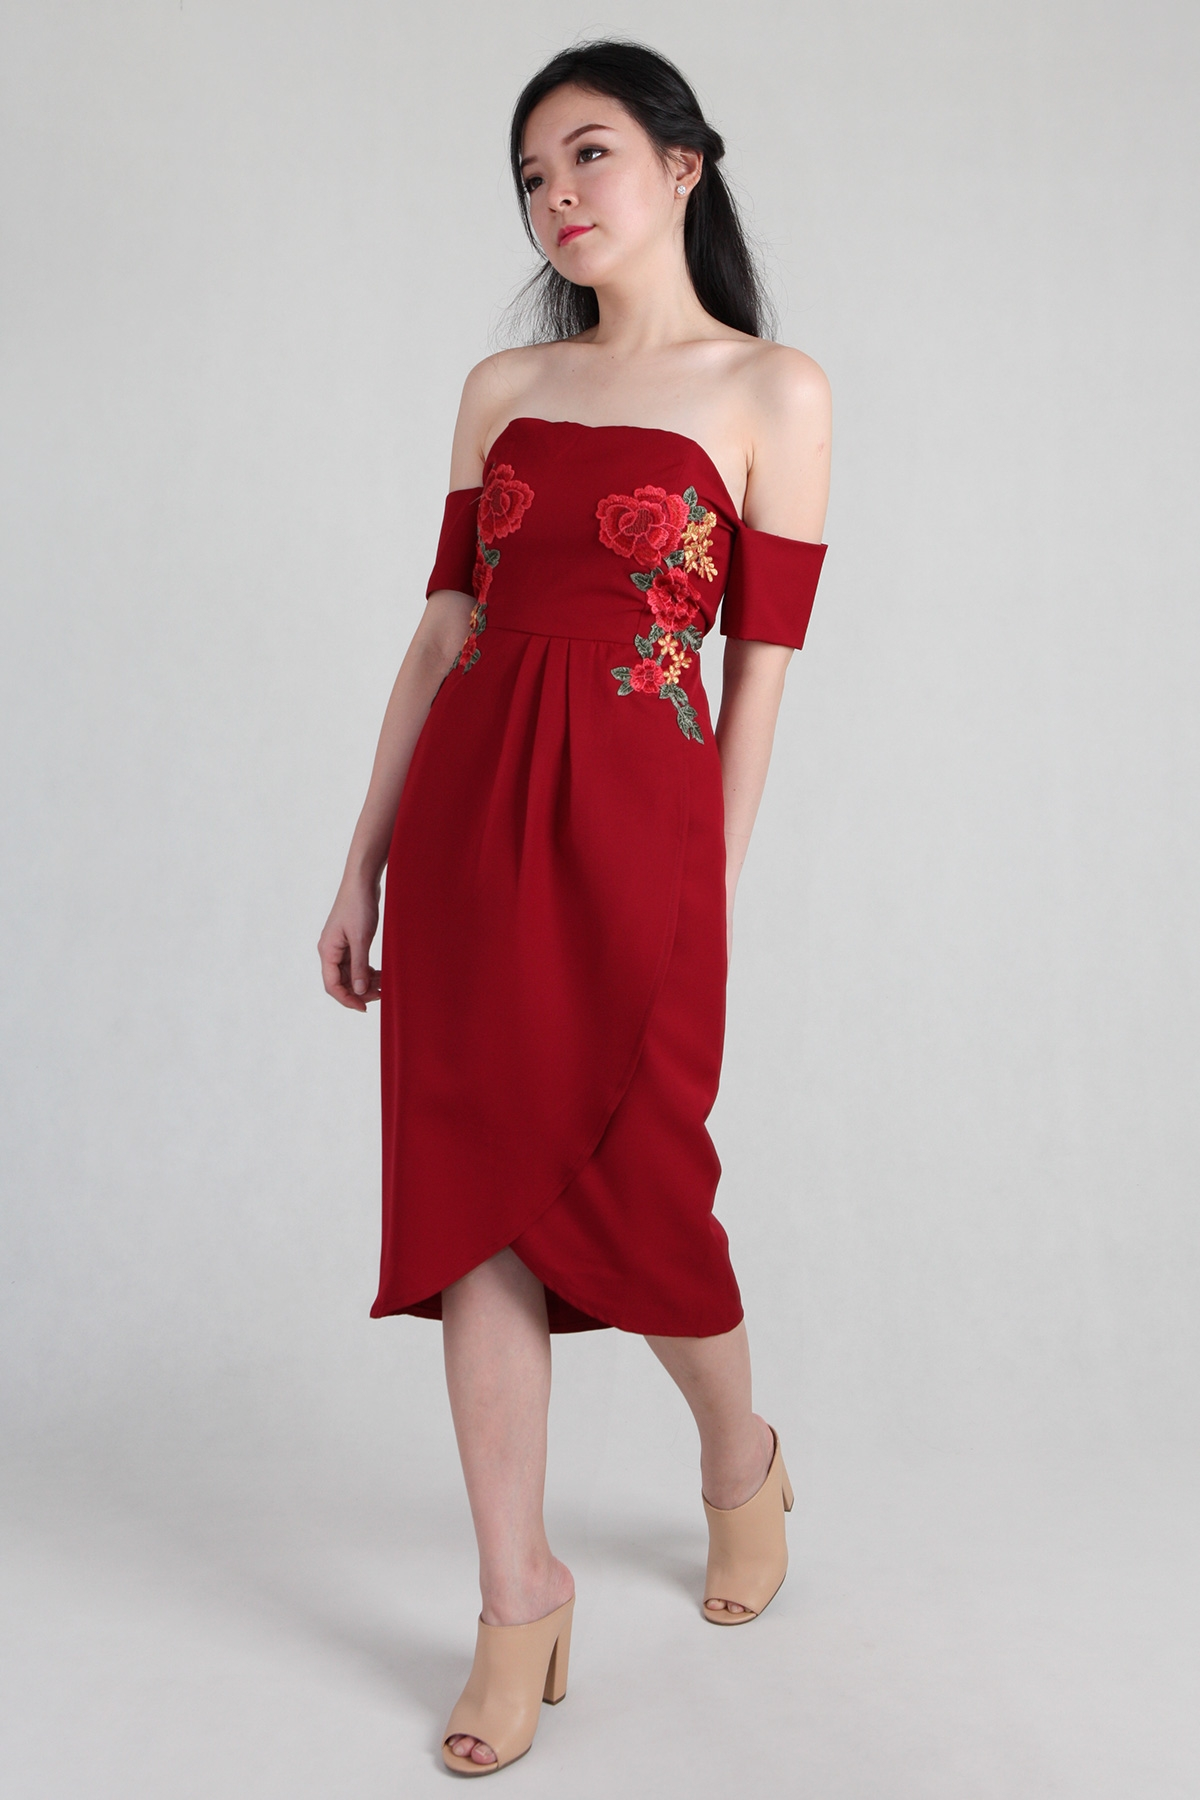 Blossom Embroidery Tube Dress in Wine